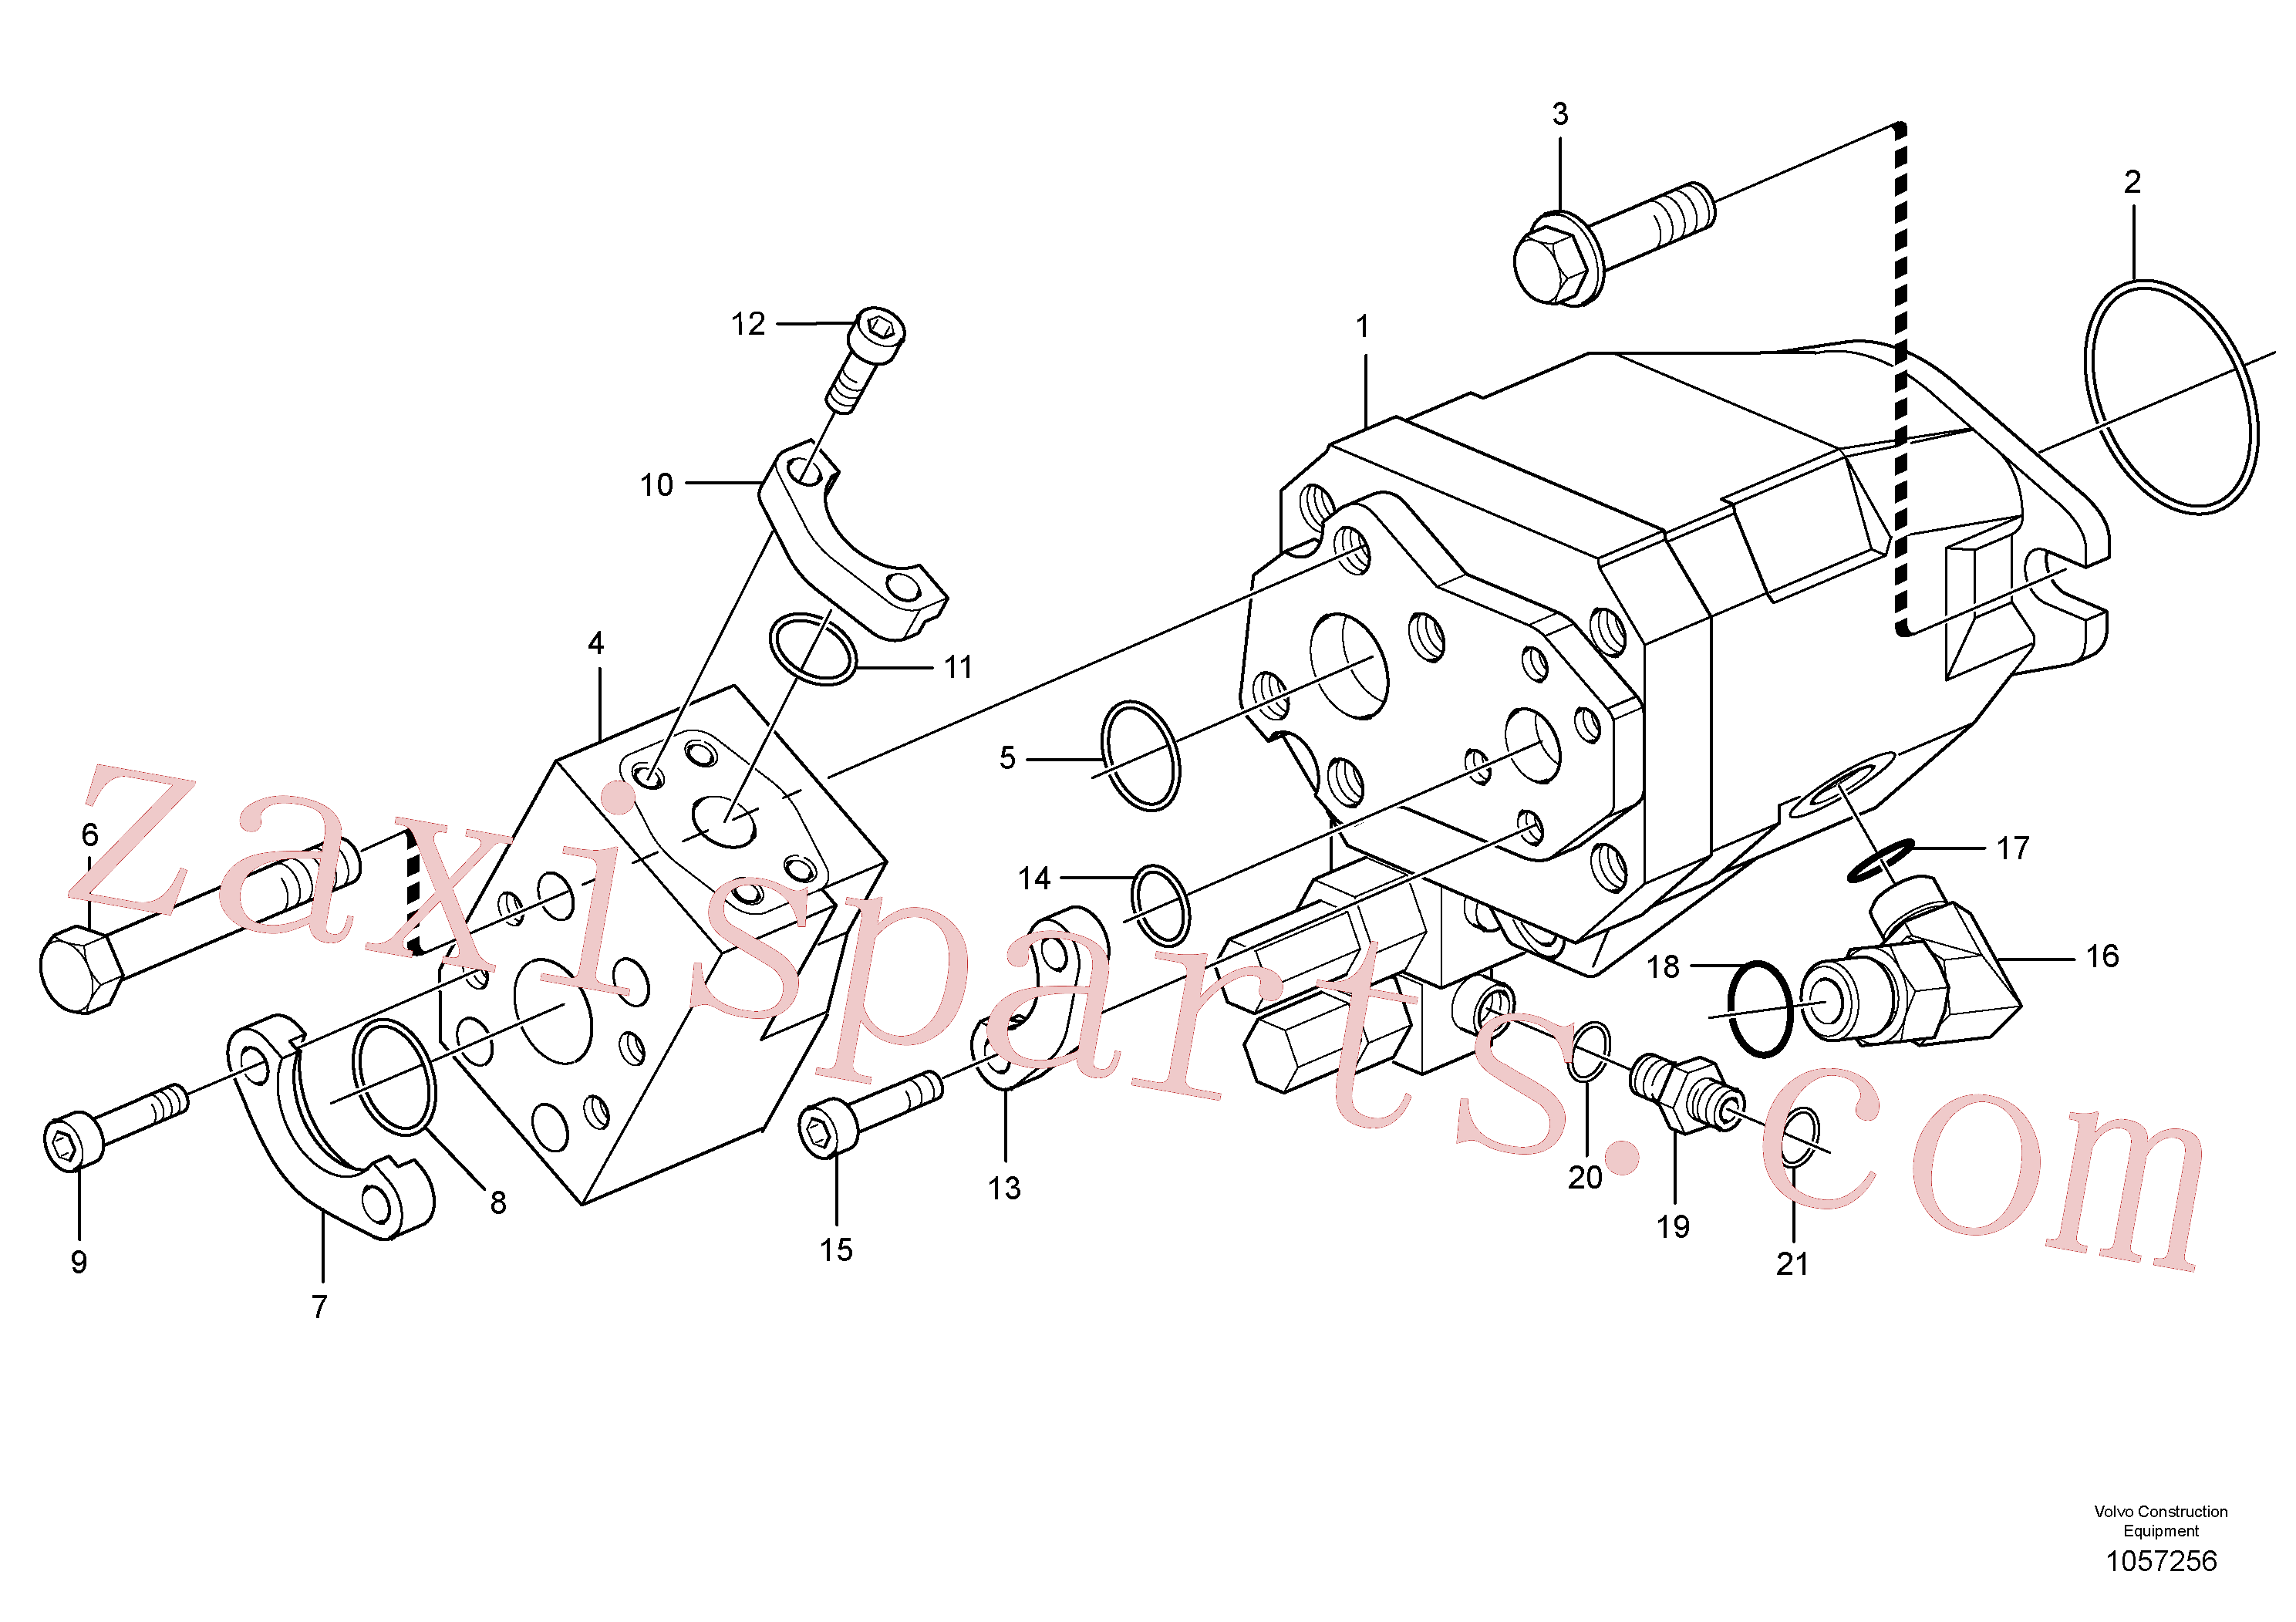 VOE944708 for Volvo Auxiliary steering system(1057256 assembly)